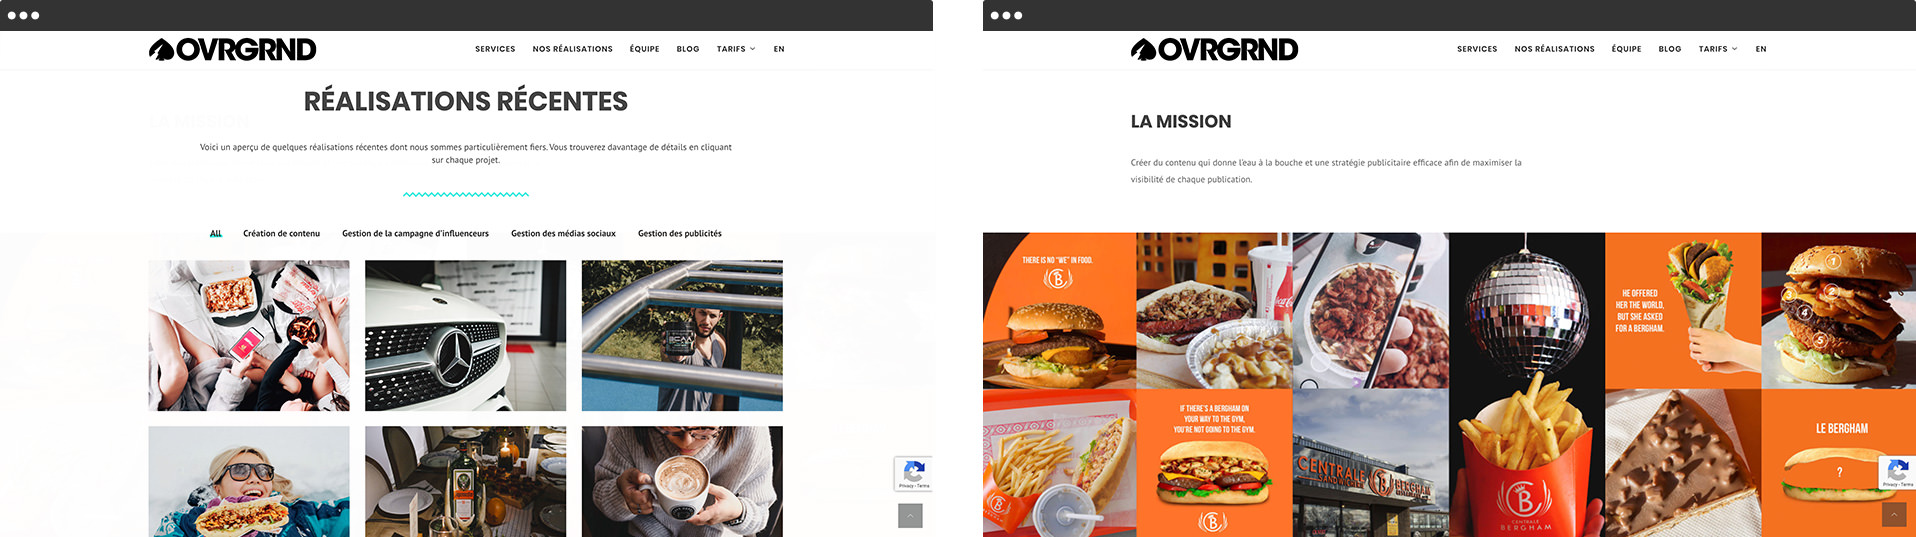 royaltri-branding-web-design-marketing-agency-montreal-ovrgrnd